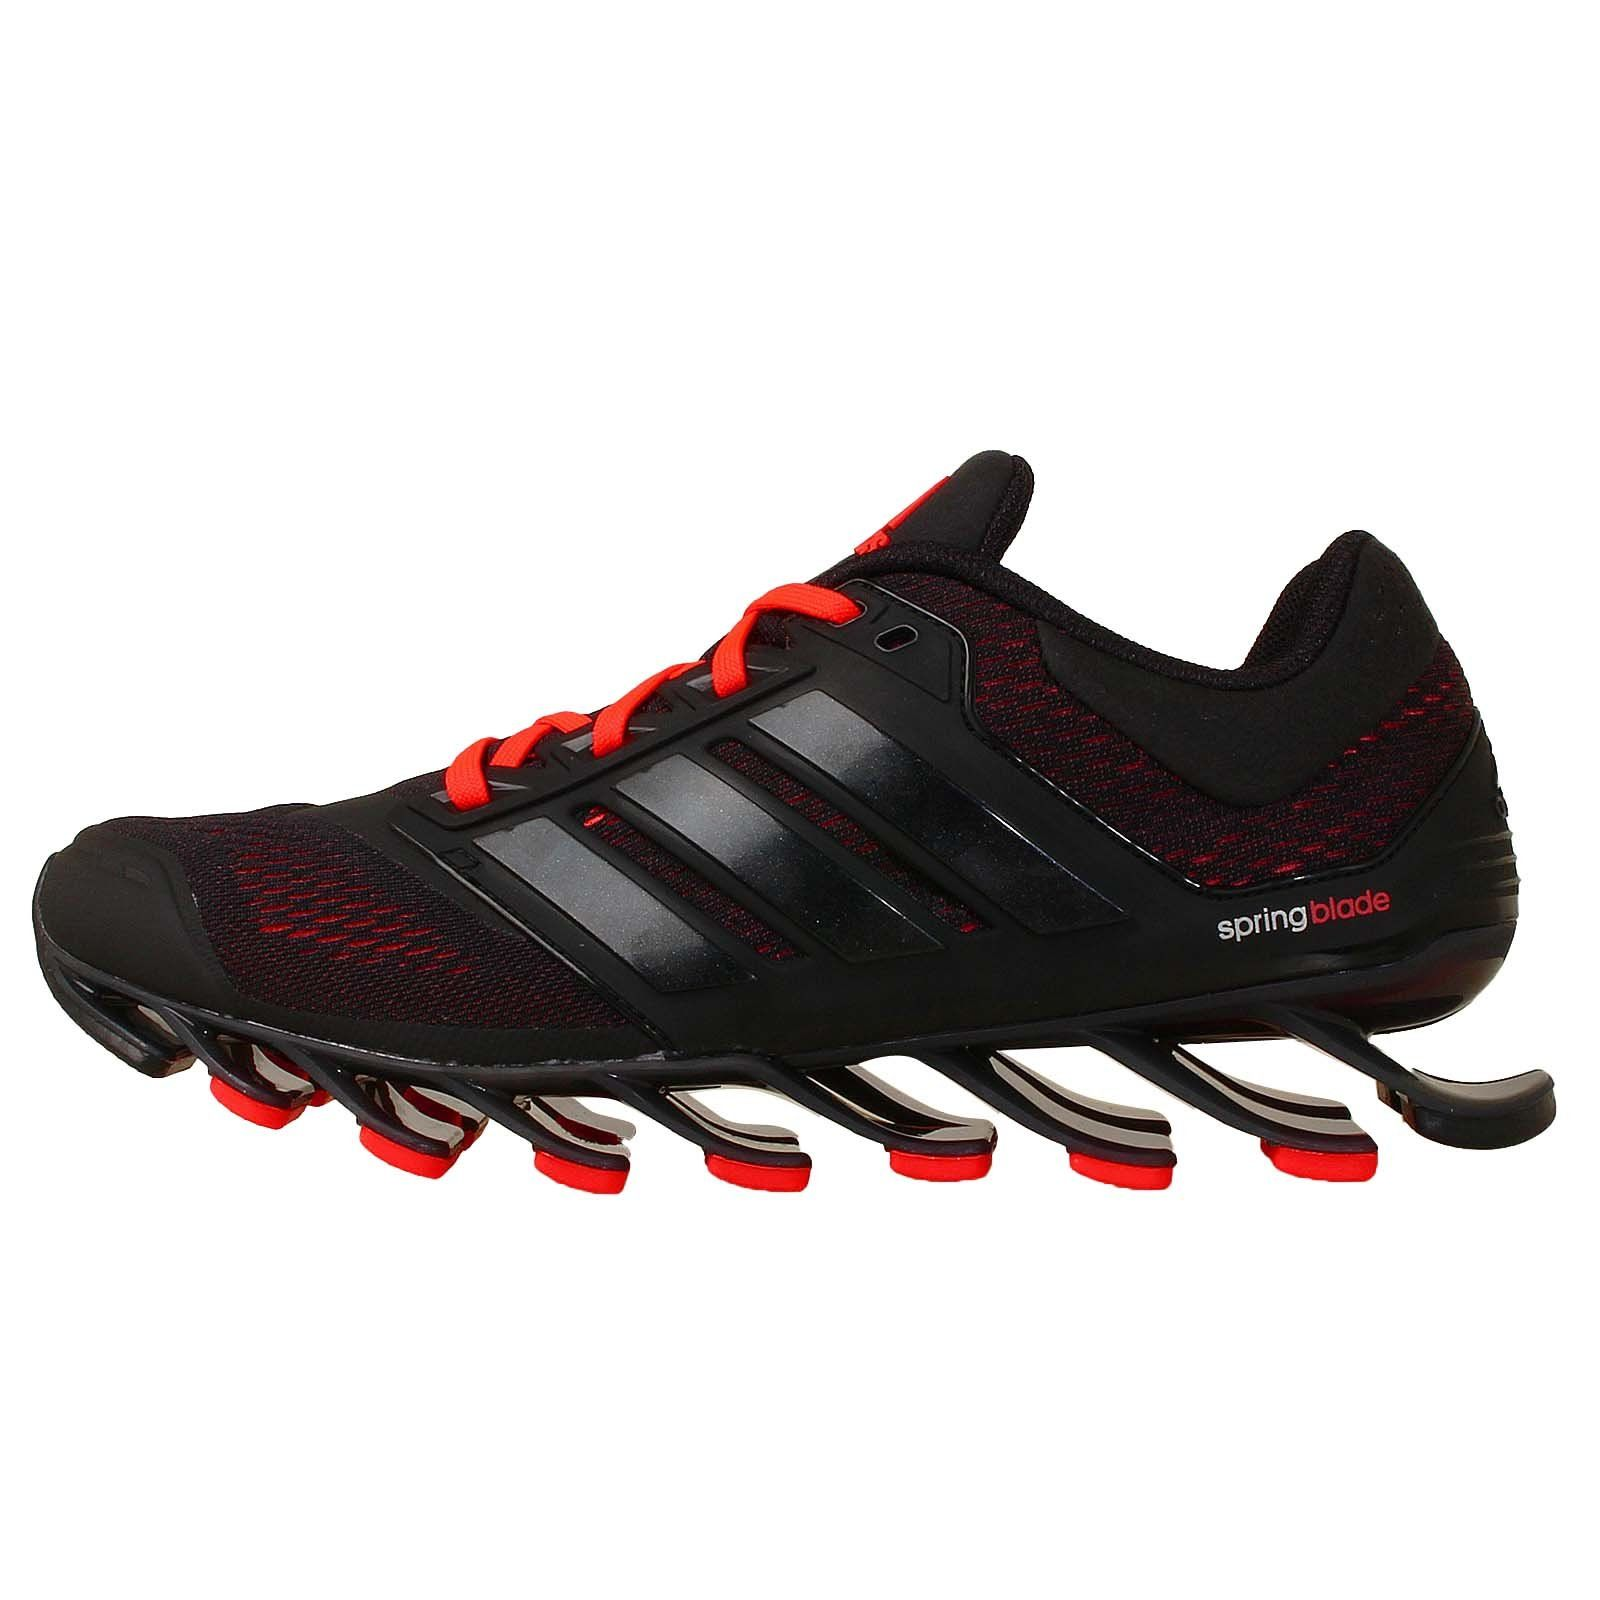 premium selection 0f54a 9477b Amazon.com  adidas Performance Men s Springblade Drive M Running Shoe  Shoes